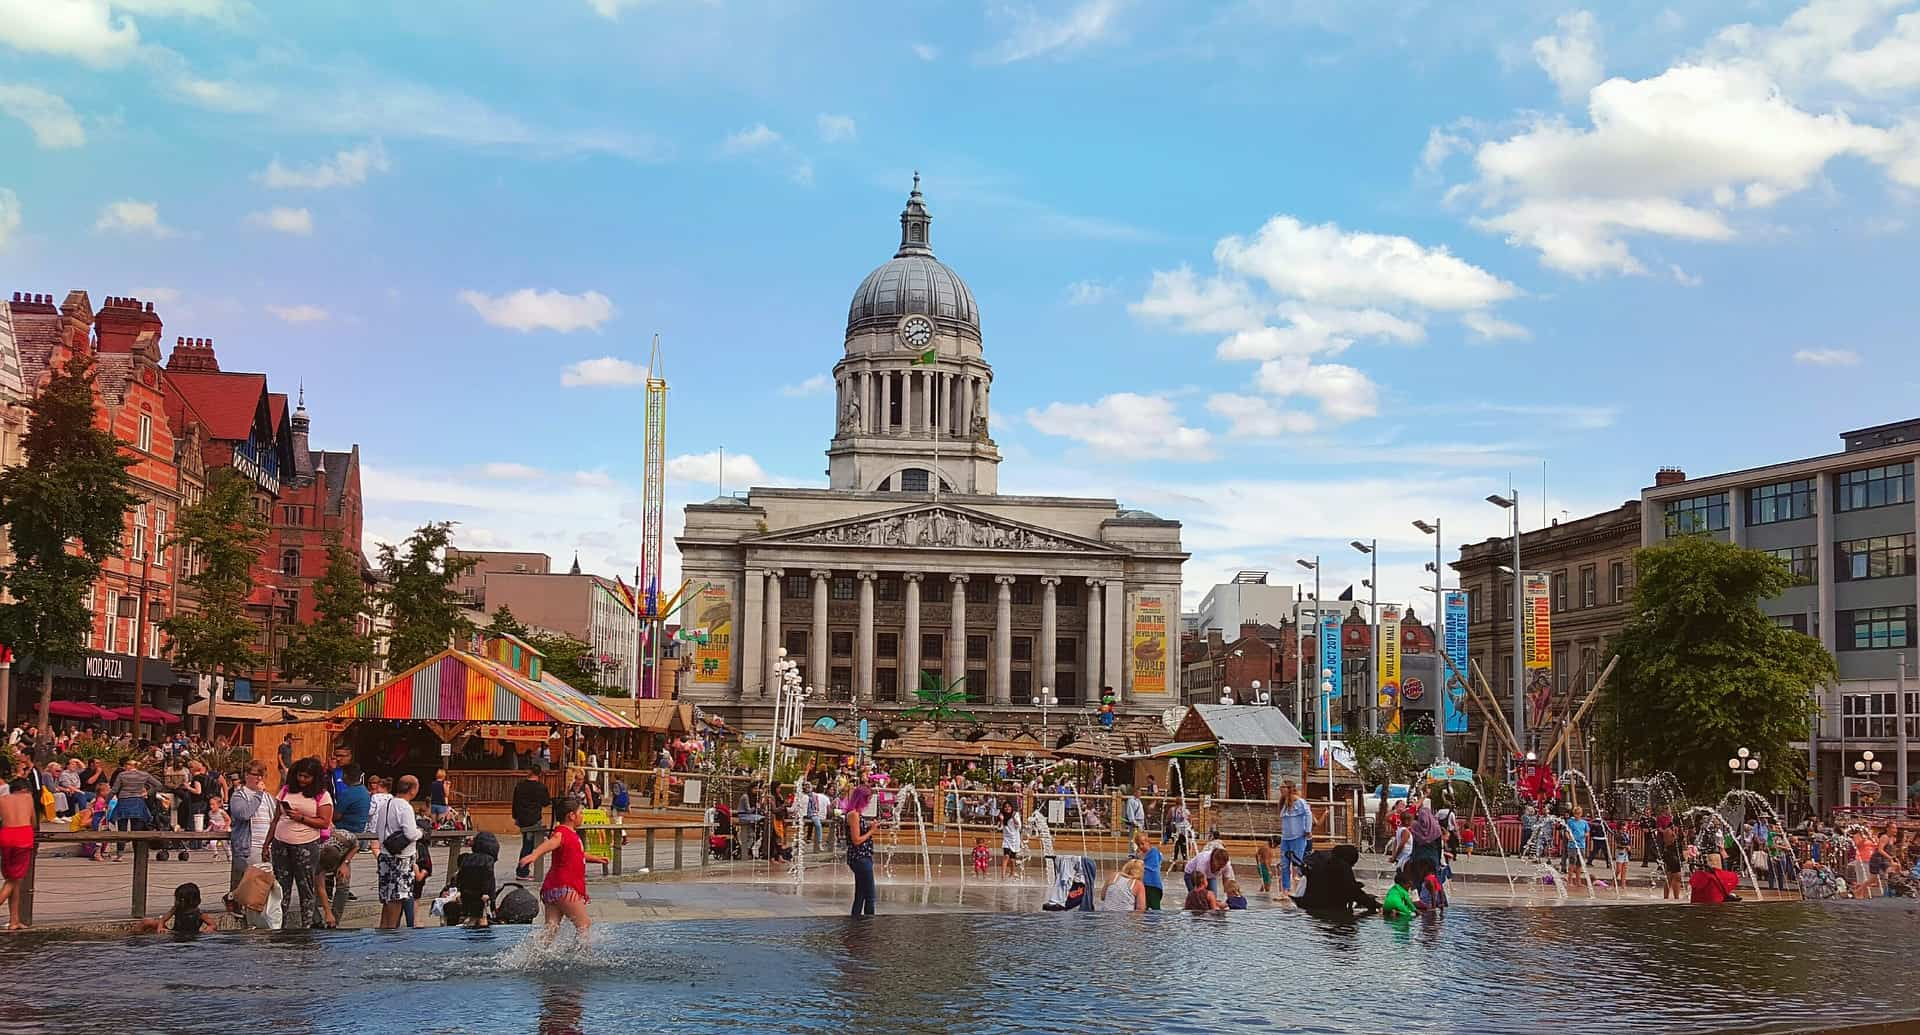 nottingham-city Jobs From Home Nottingham on jobs money, full-time jobs home, jobs family, jobs at home, fulfilling jobs home, work at home, bring jobs home,